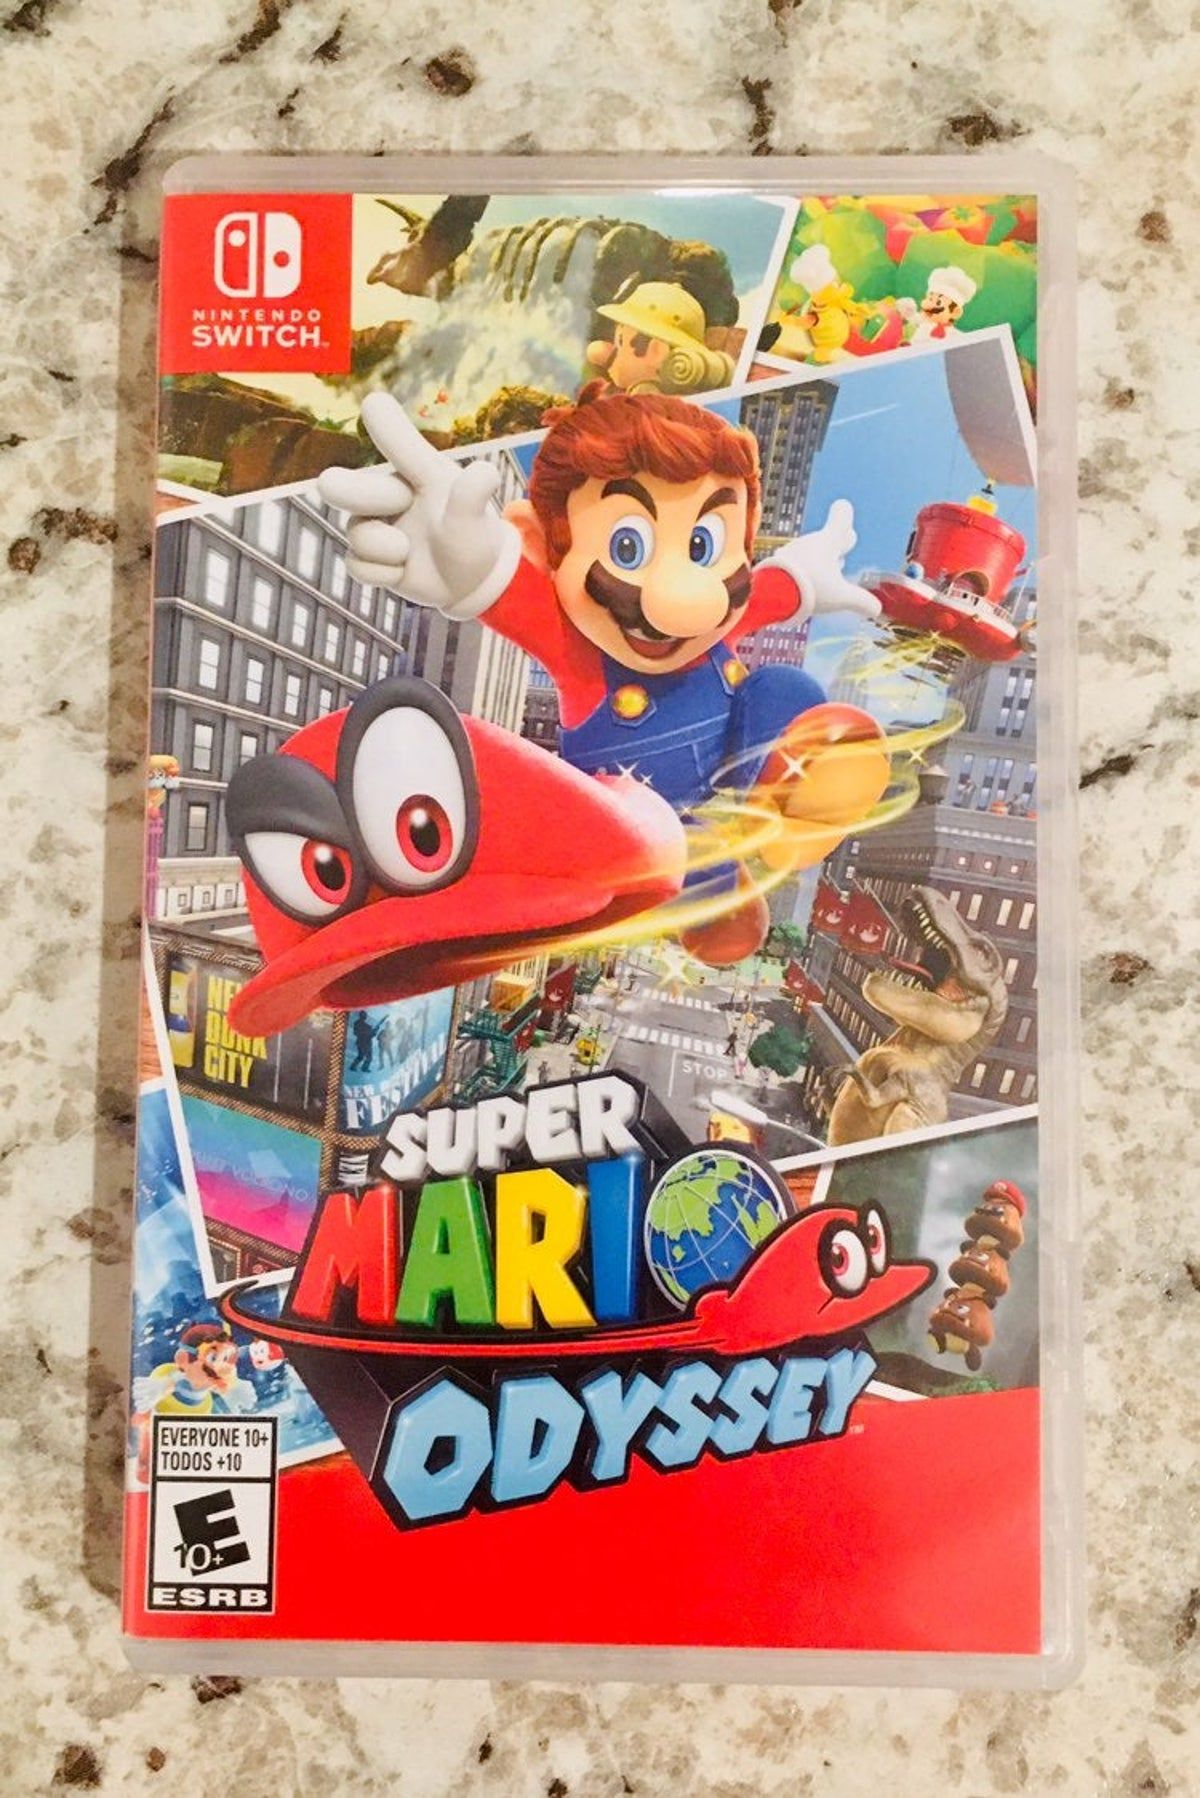 Pin By Stottpaula On Switch In 2020 Super Mario Nintendo Switch Games Nintendo Switch Super Mario